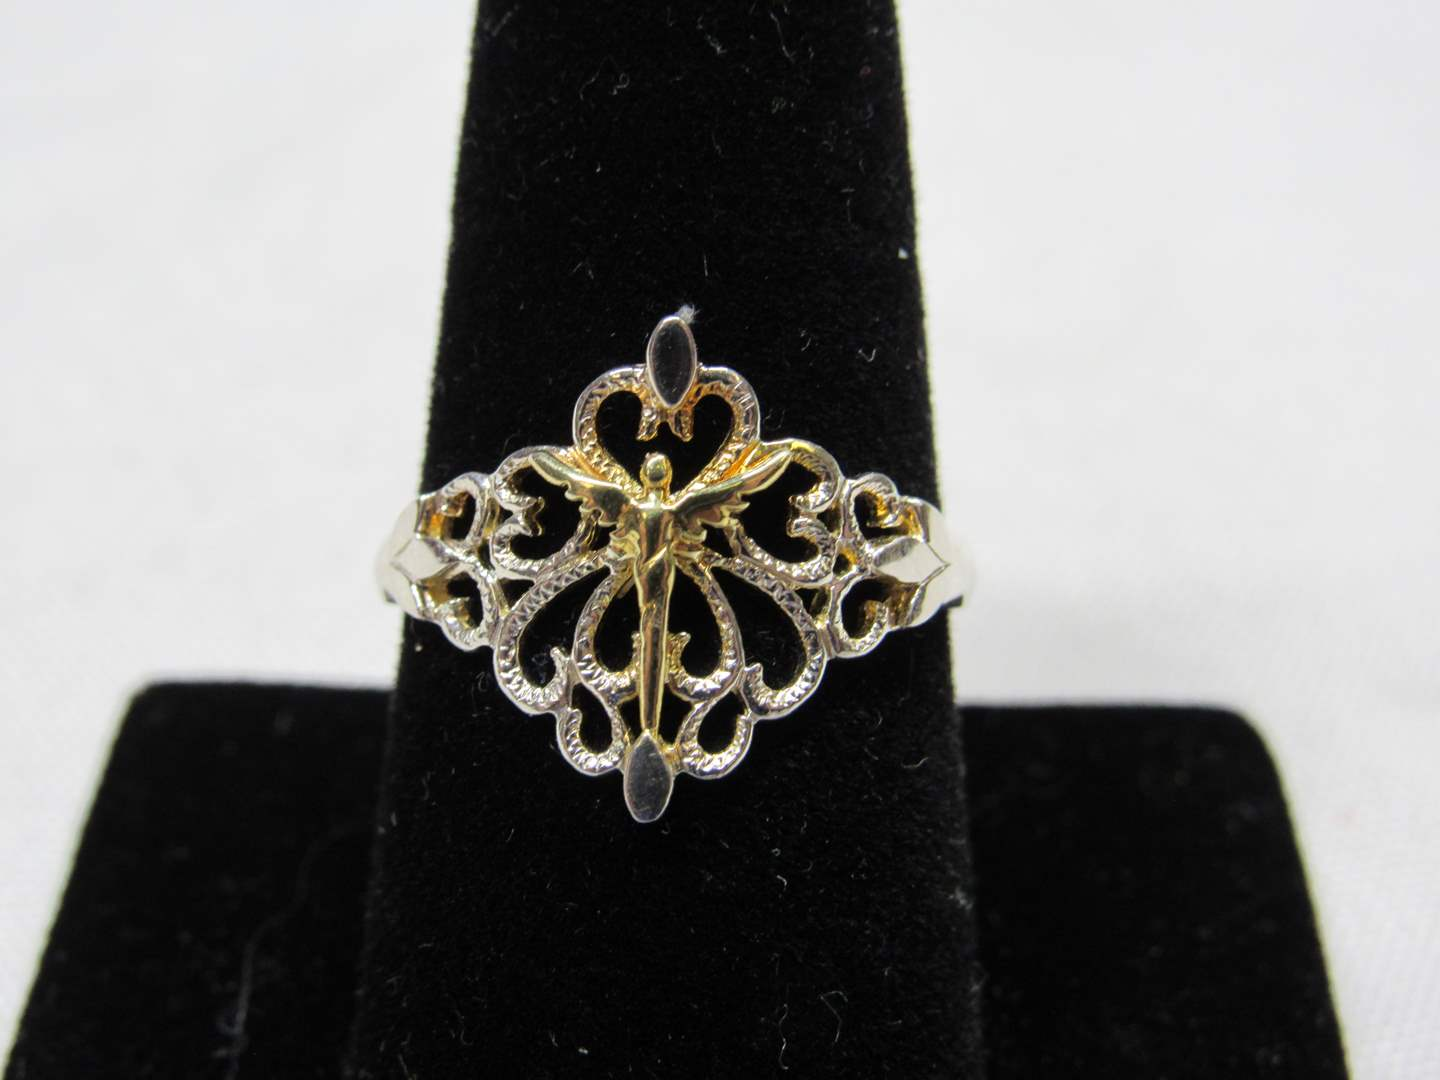 Lot # 221  Reticulated sterling silver w/gold accents size size 9 ring (main image)